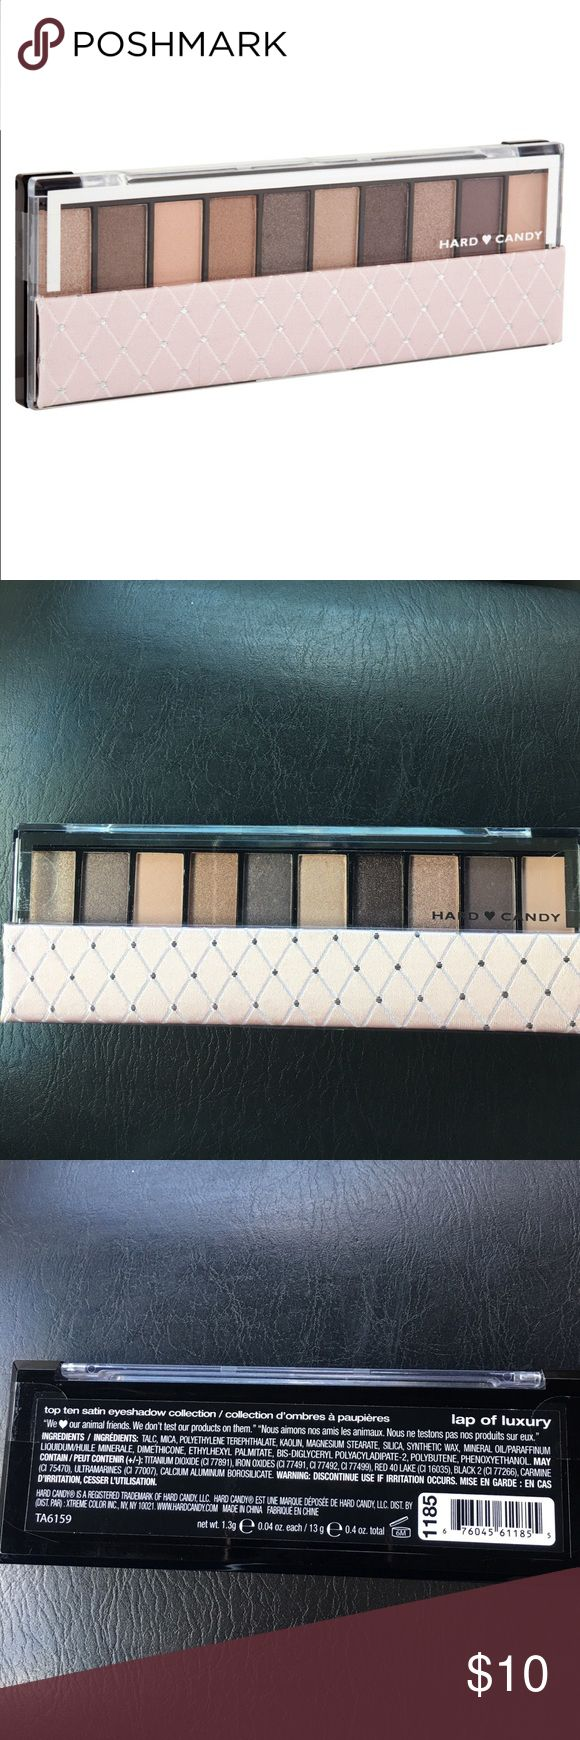 Hard Candy Top Ten Satin- Lap of Luxury Hard Candy Top Ten Satin- Lap of Luxury (1185). An eye shadow collection of fashion-forward colors in a chic, fabric mirror compact in an extraordinary range of shades, with matte, shimmer, glitter, and metallic finishes. Apply over Hard Candy eyeshadow primer for maximum pigmentation.  Combine different colors for a new, custom look every time. Apply shadows wet or dry.  NEW, unopened 💜 Hard Candy Makeup Eyeshadow